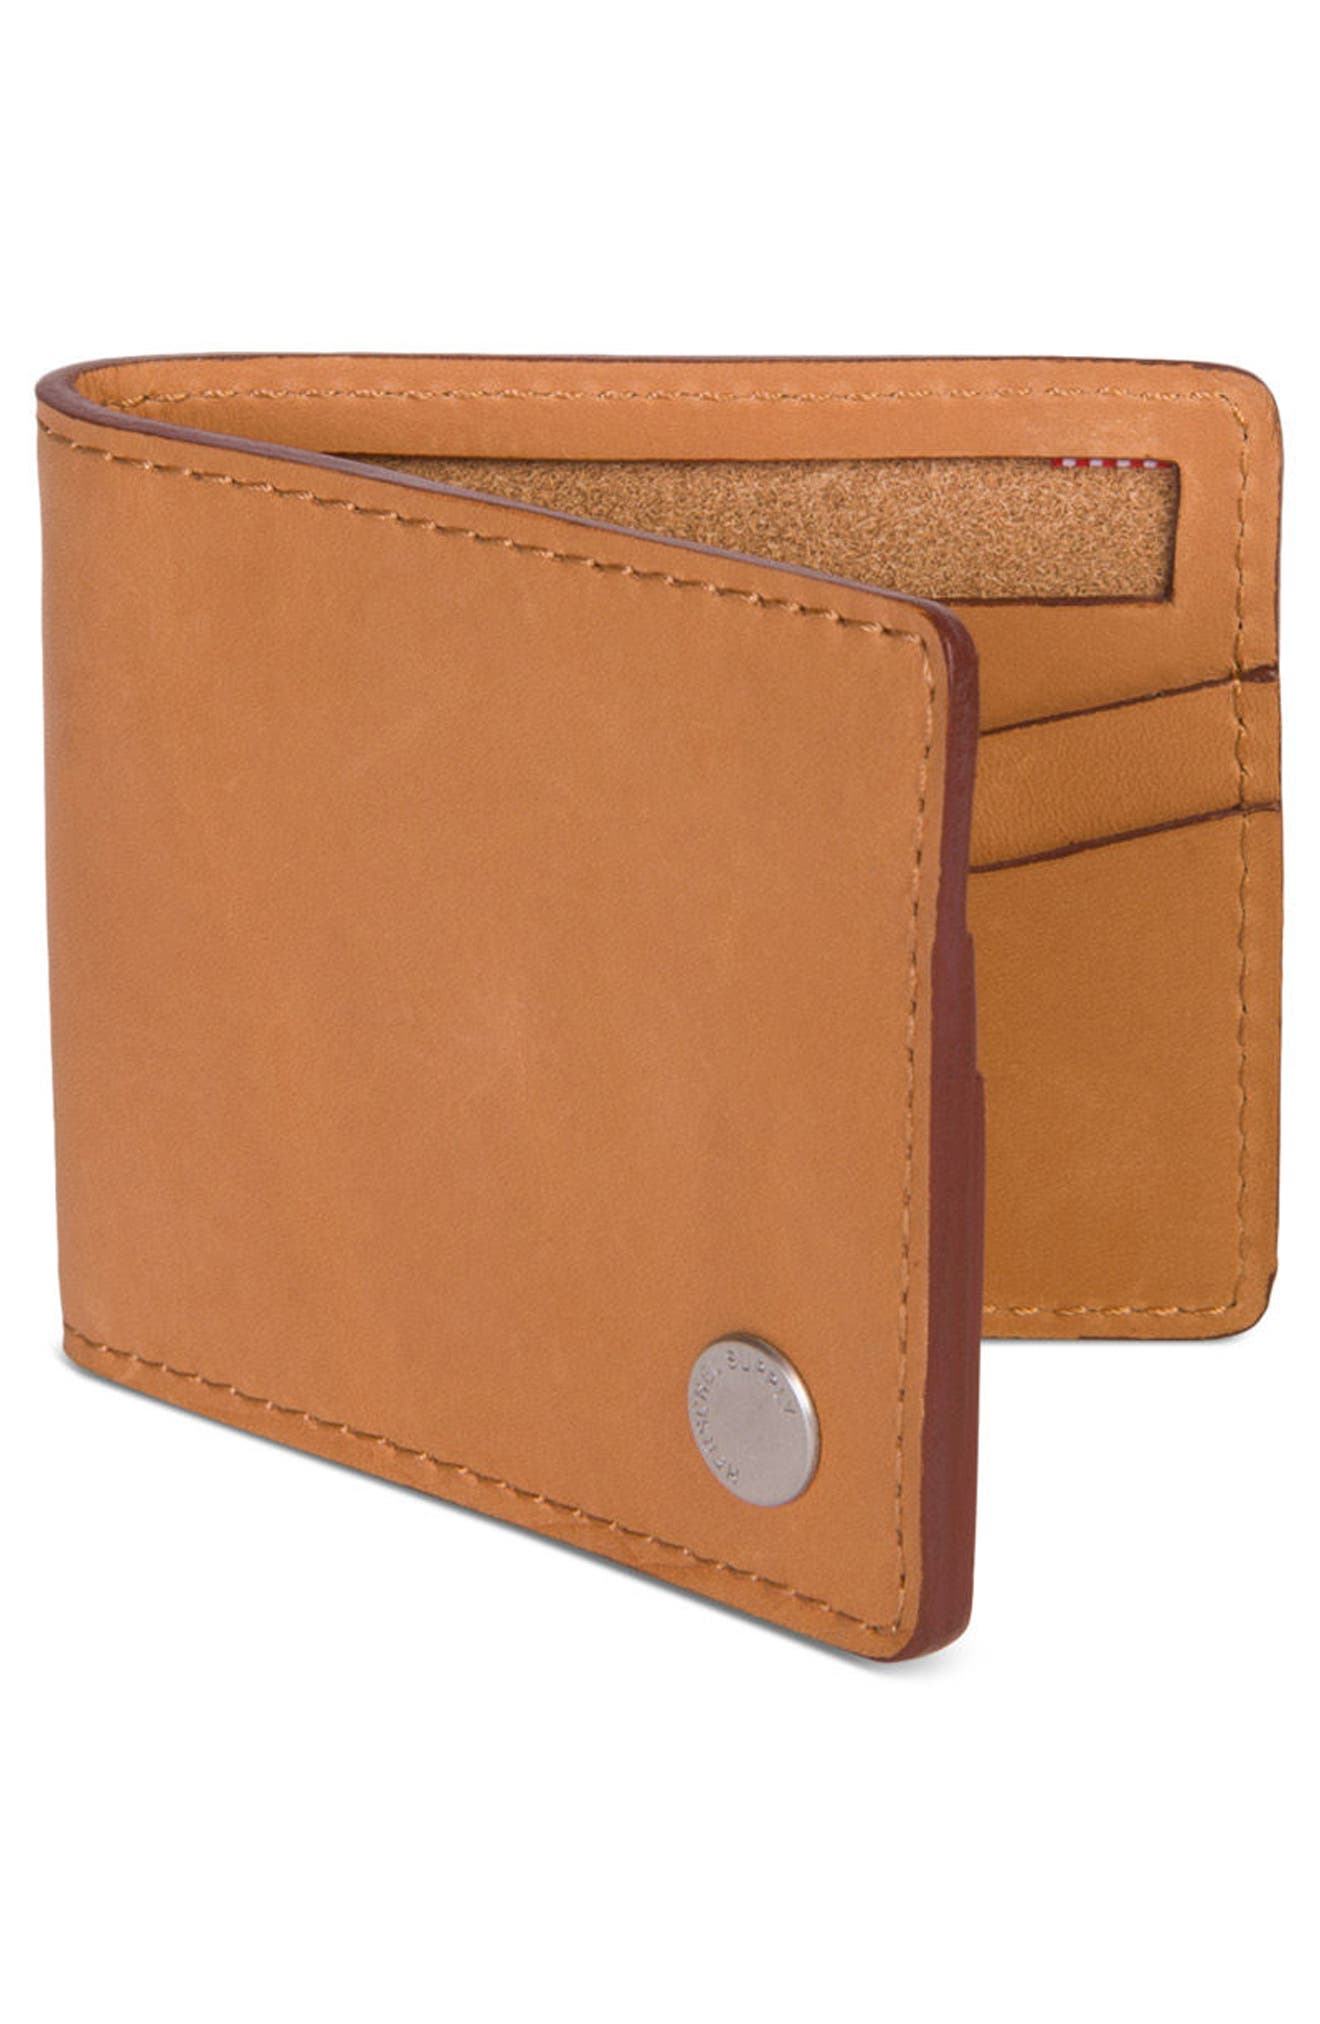 Vincent Saddle Leather Wallet,                             Alternate thumbnail 3, color,                             Tan